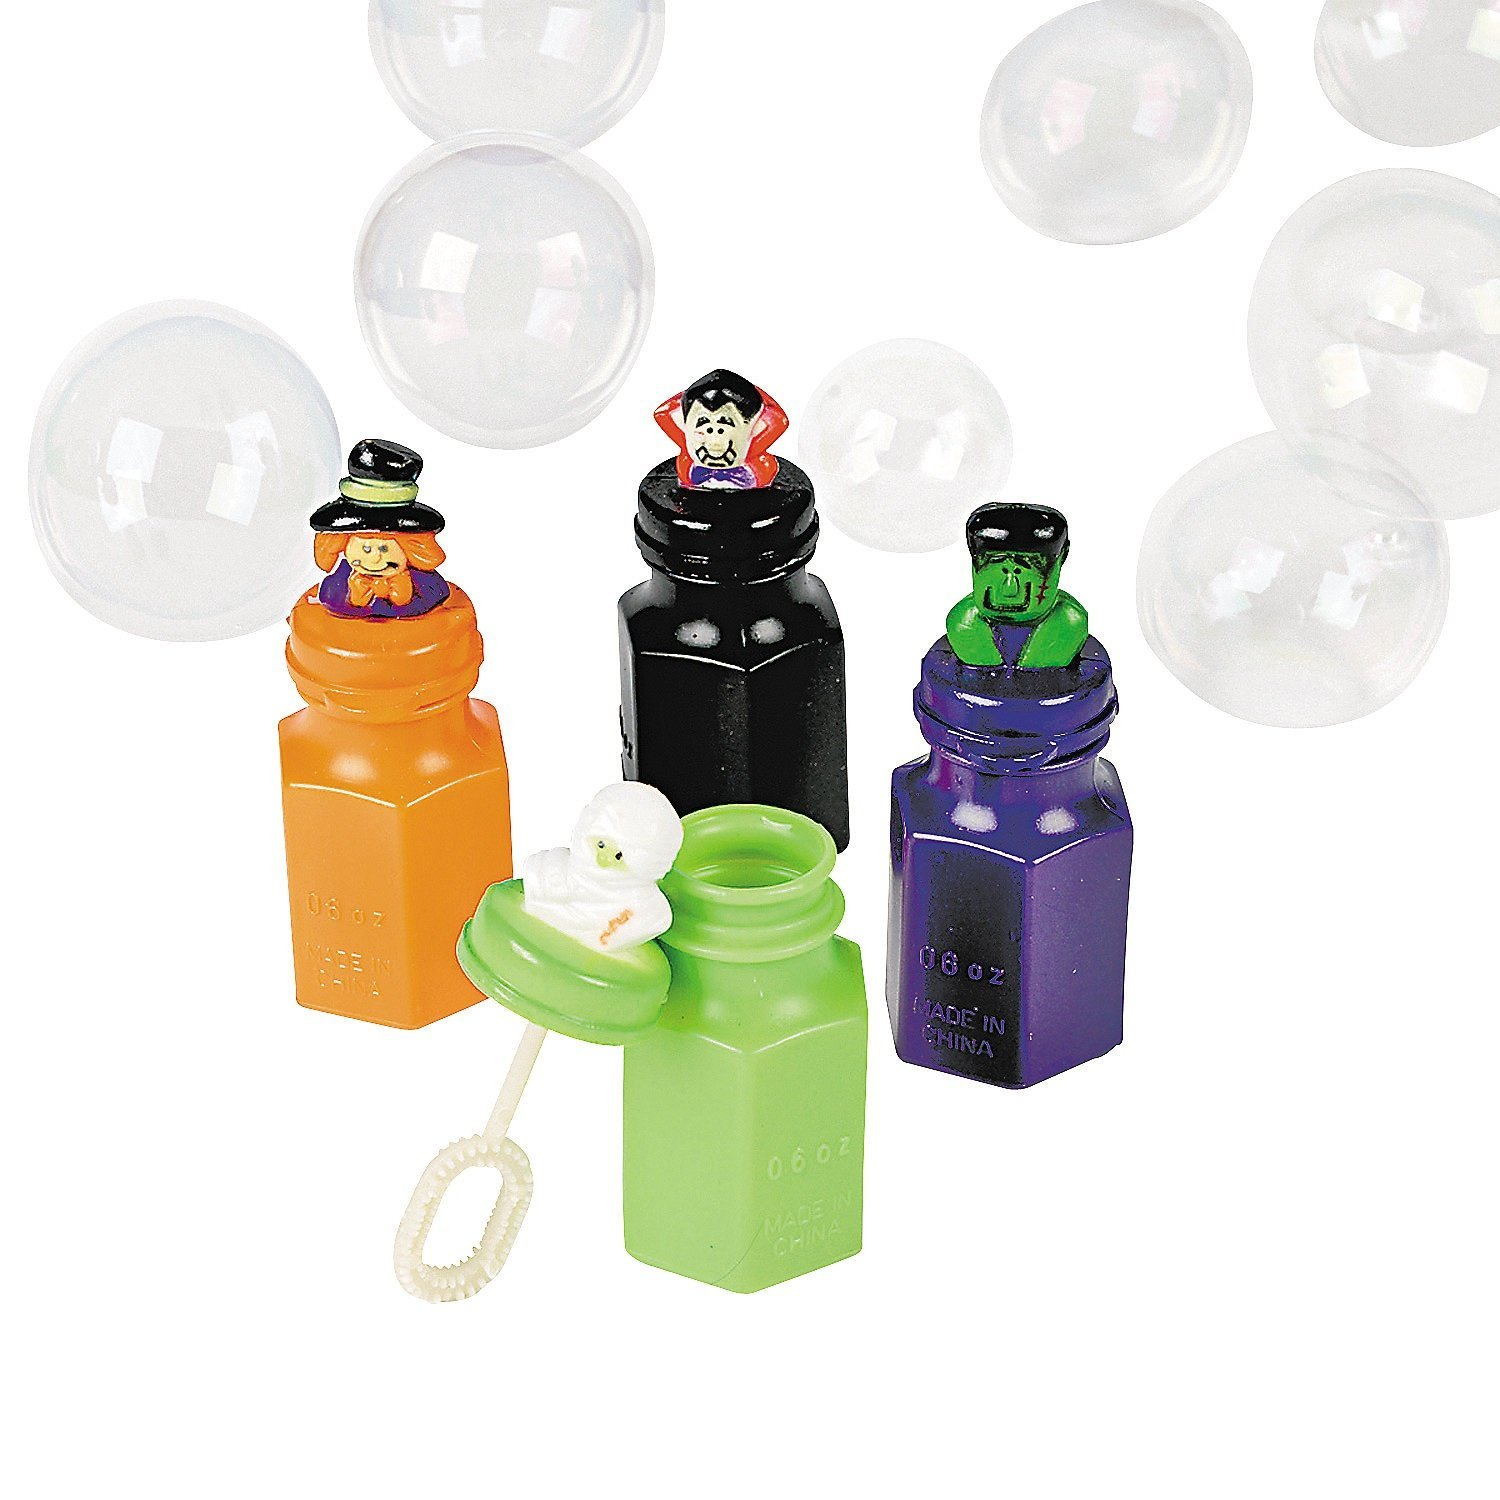 24 Halloween Character Bubble Bottles - Party Favors & Bubbles